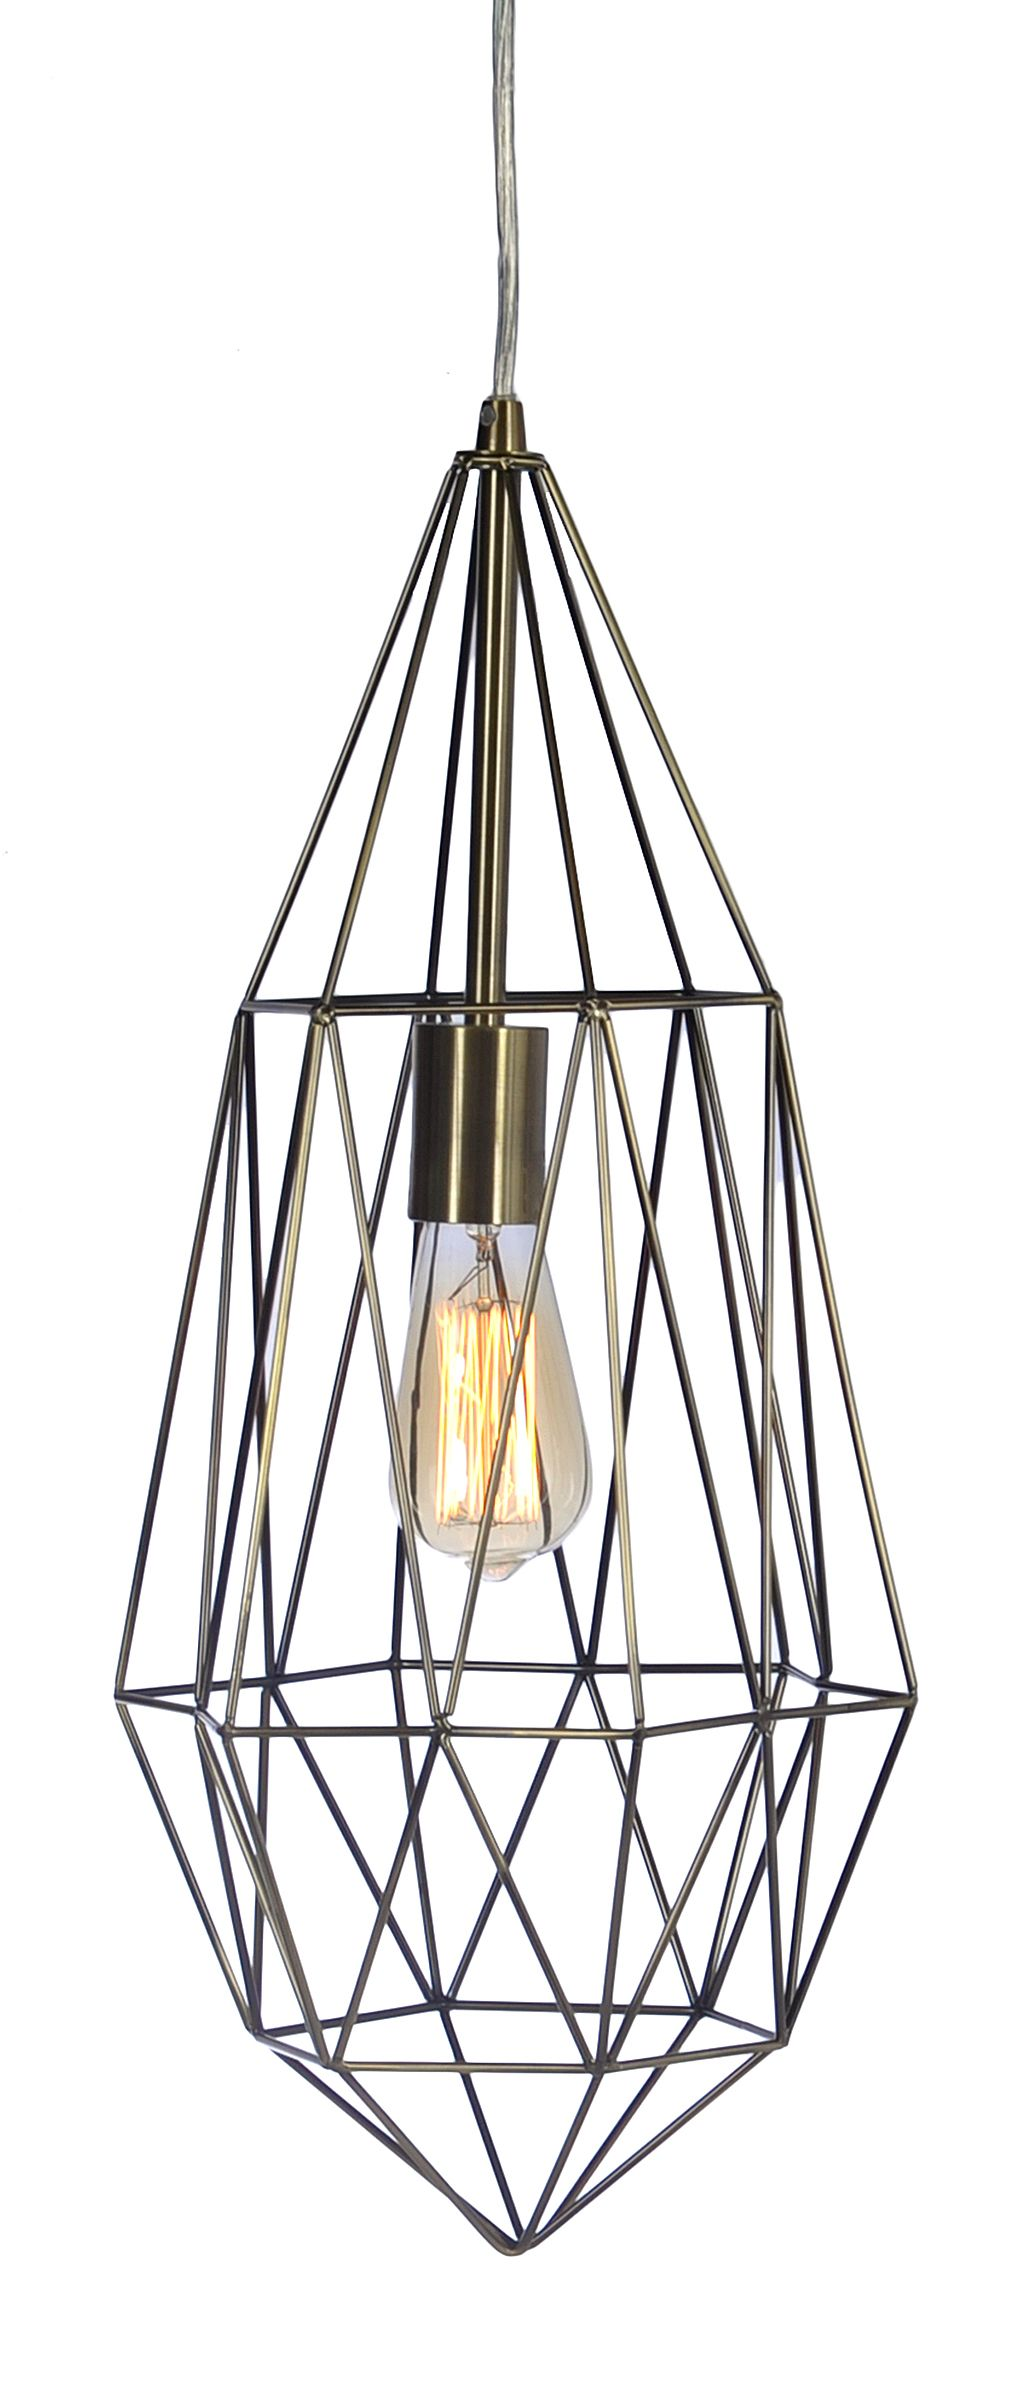 Antique Silver Drop Cage Pendant Light | Industrial style lamps ...